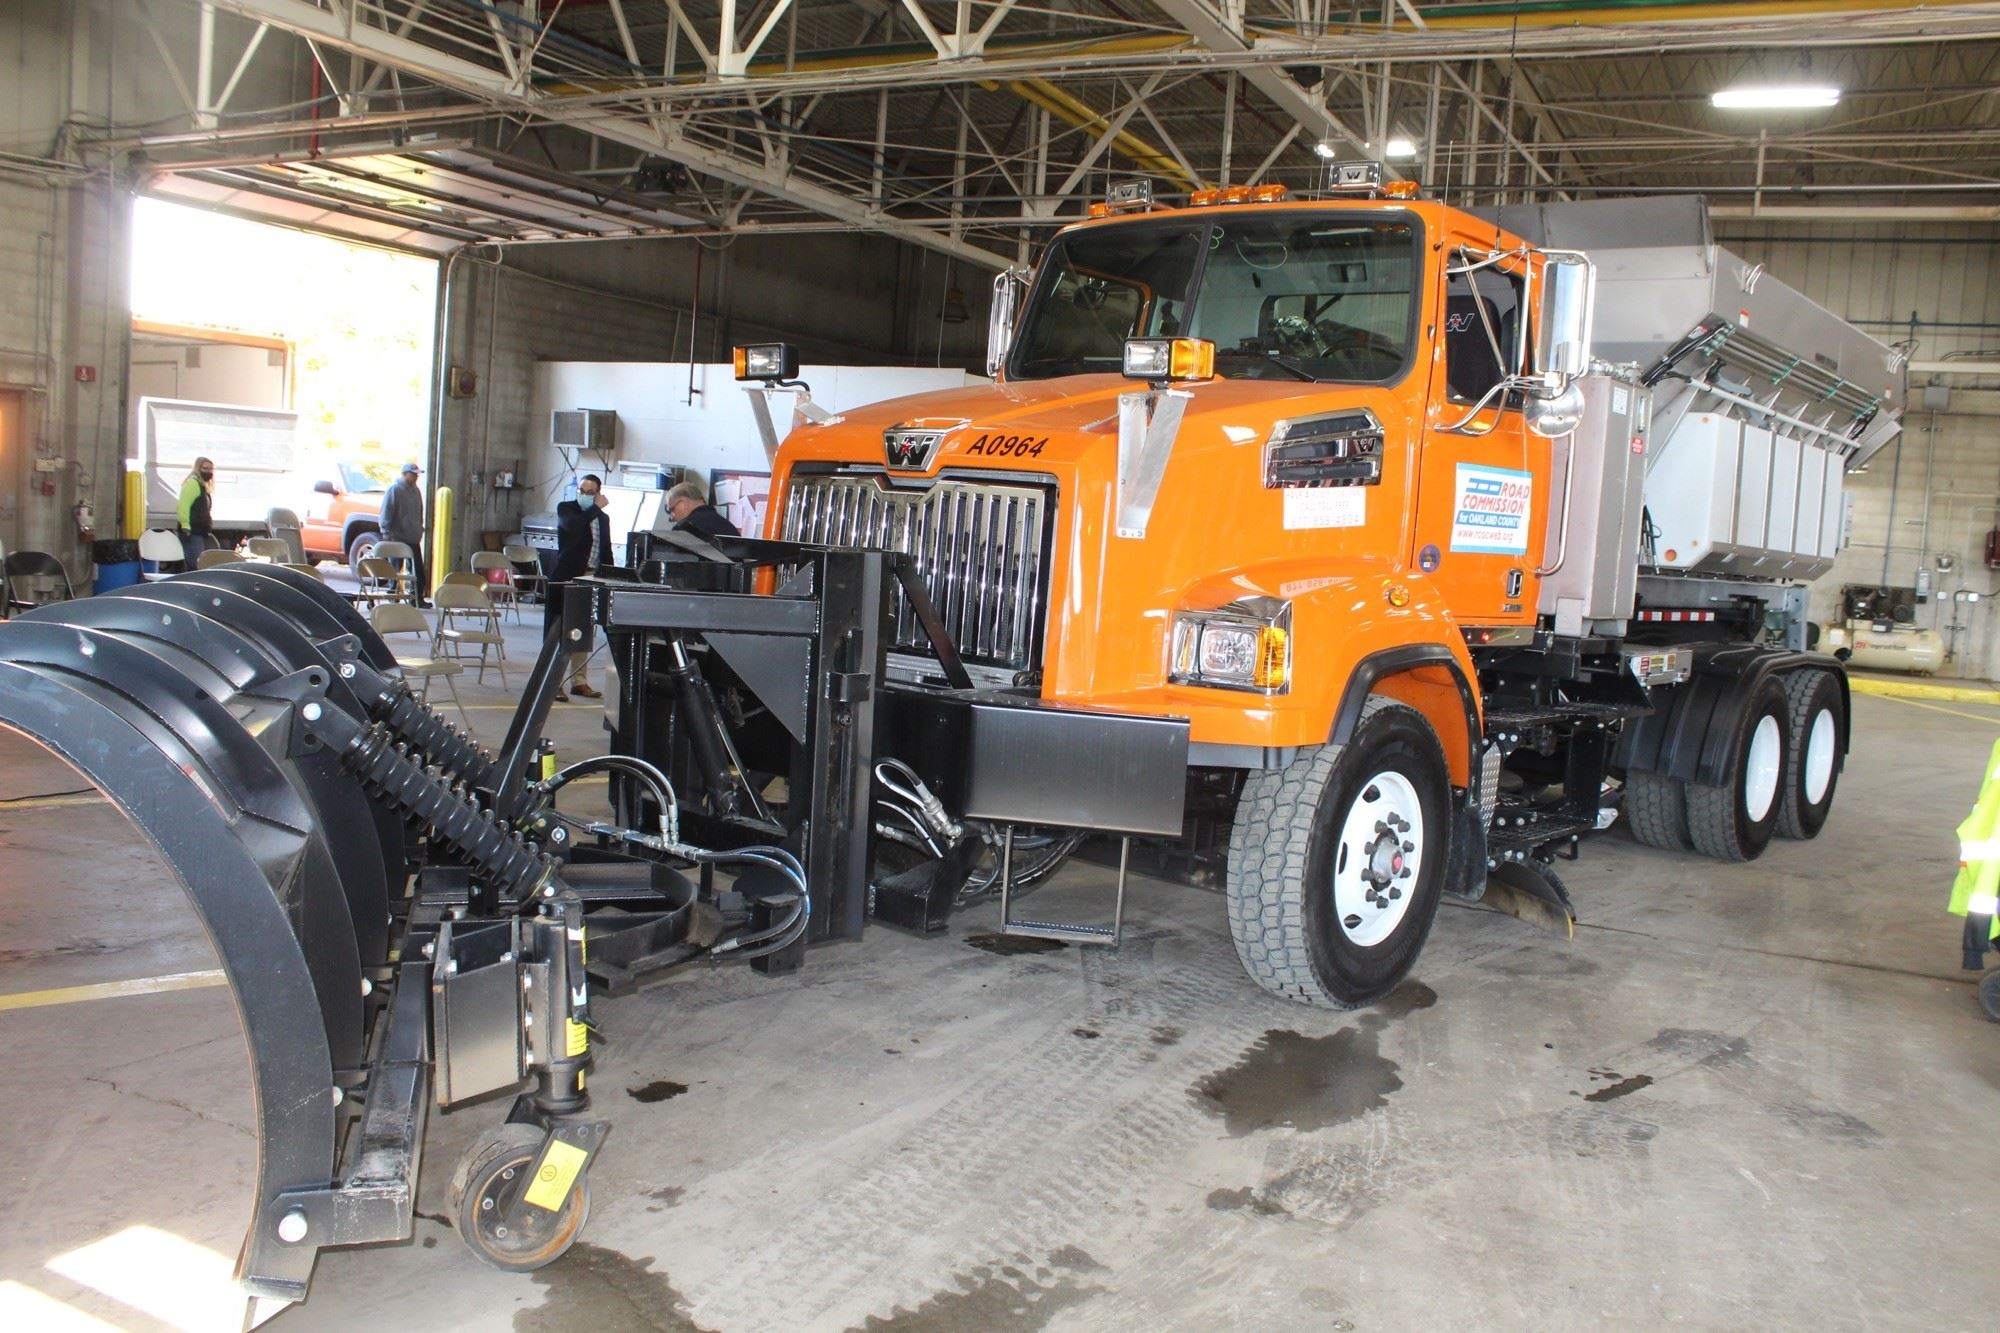 RCOC snowplow truck at the Southfield garage